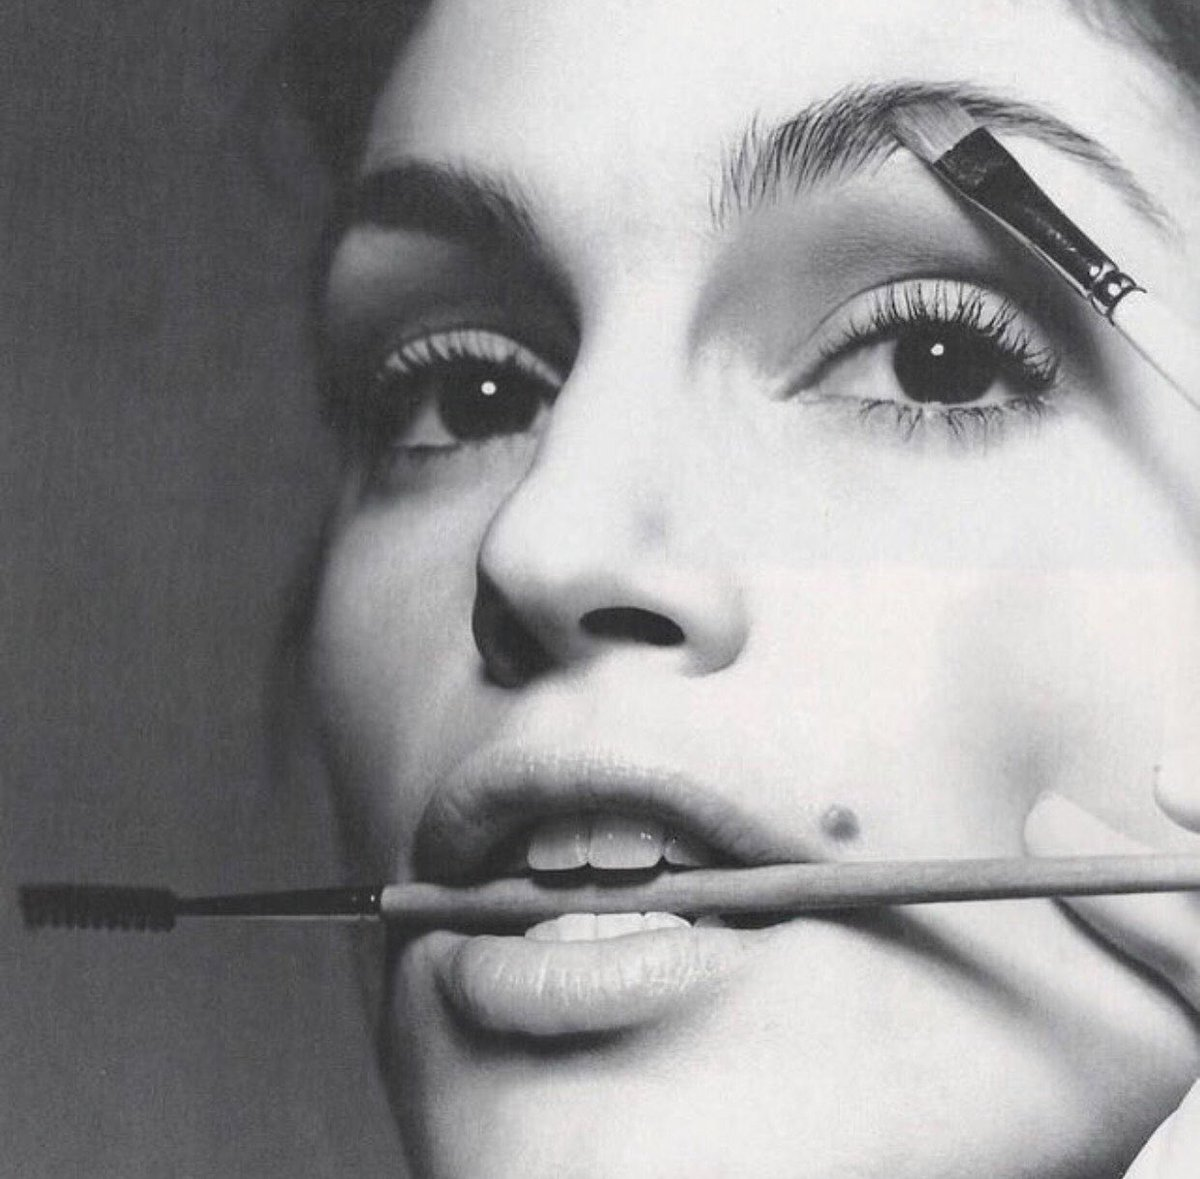 Sad Quotes About Depression: Cindy Crawford (@CindyCrawford)